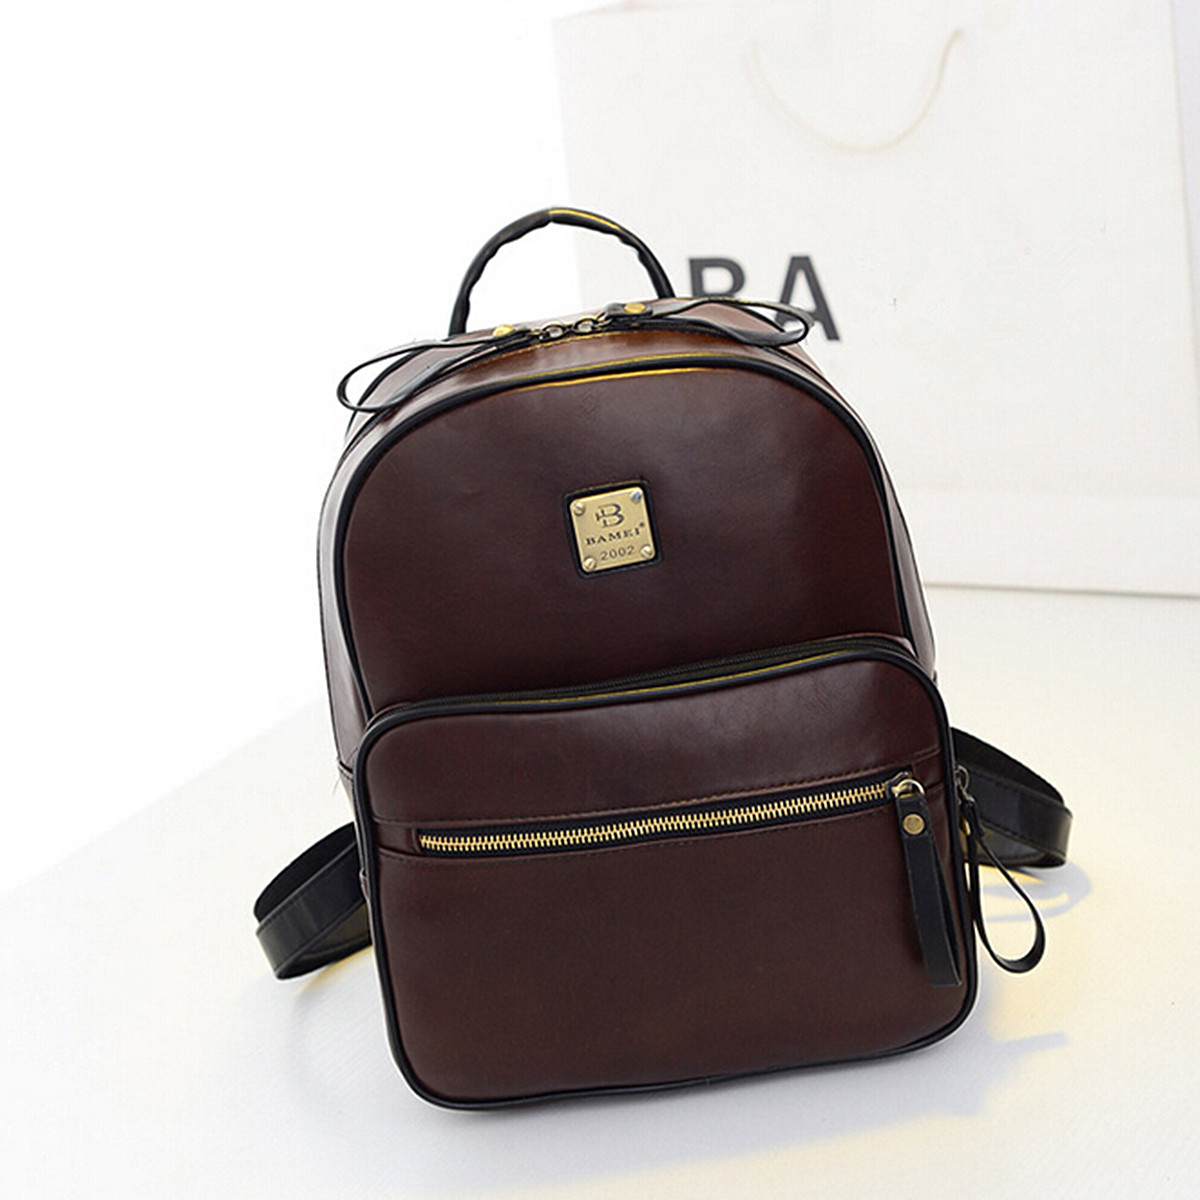 Leather Backpacks For Women Uk | Crazy Backpacks